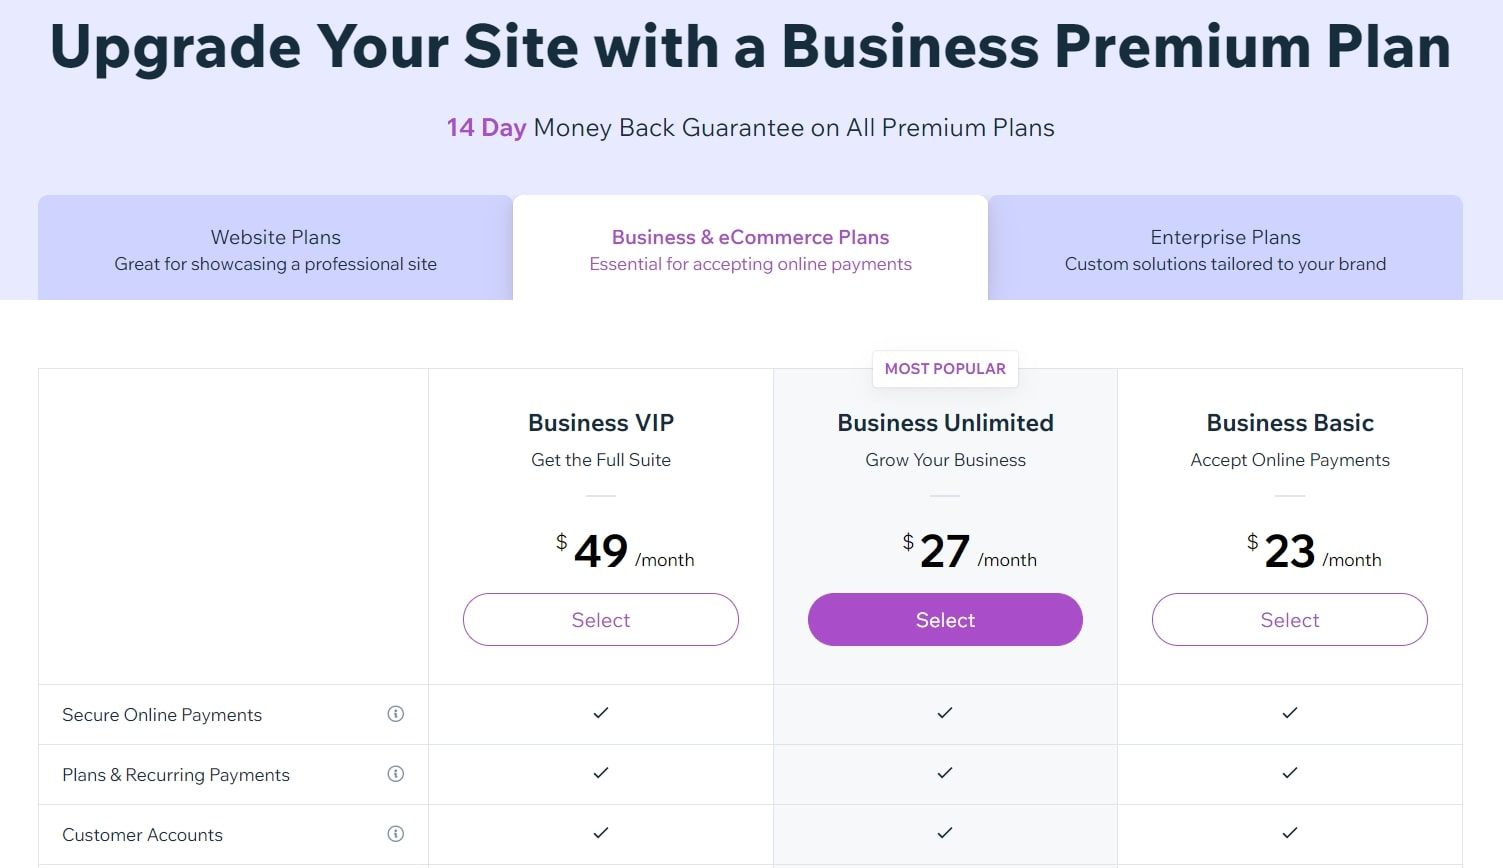 Wix's pricing plans for business and ecommerce